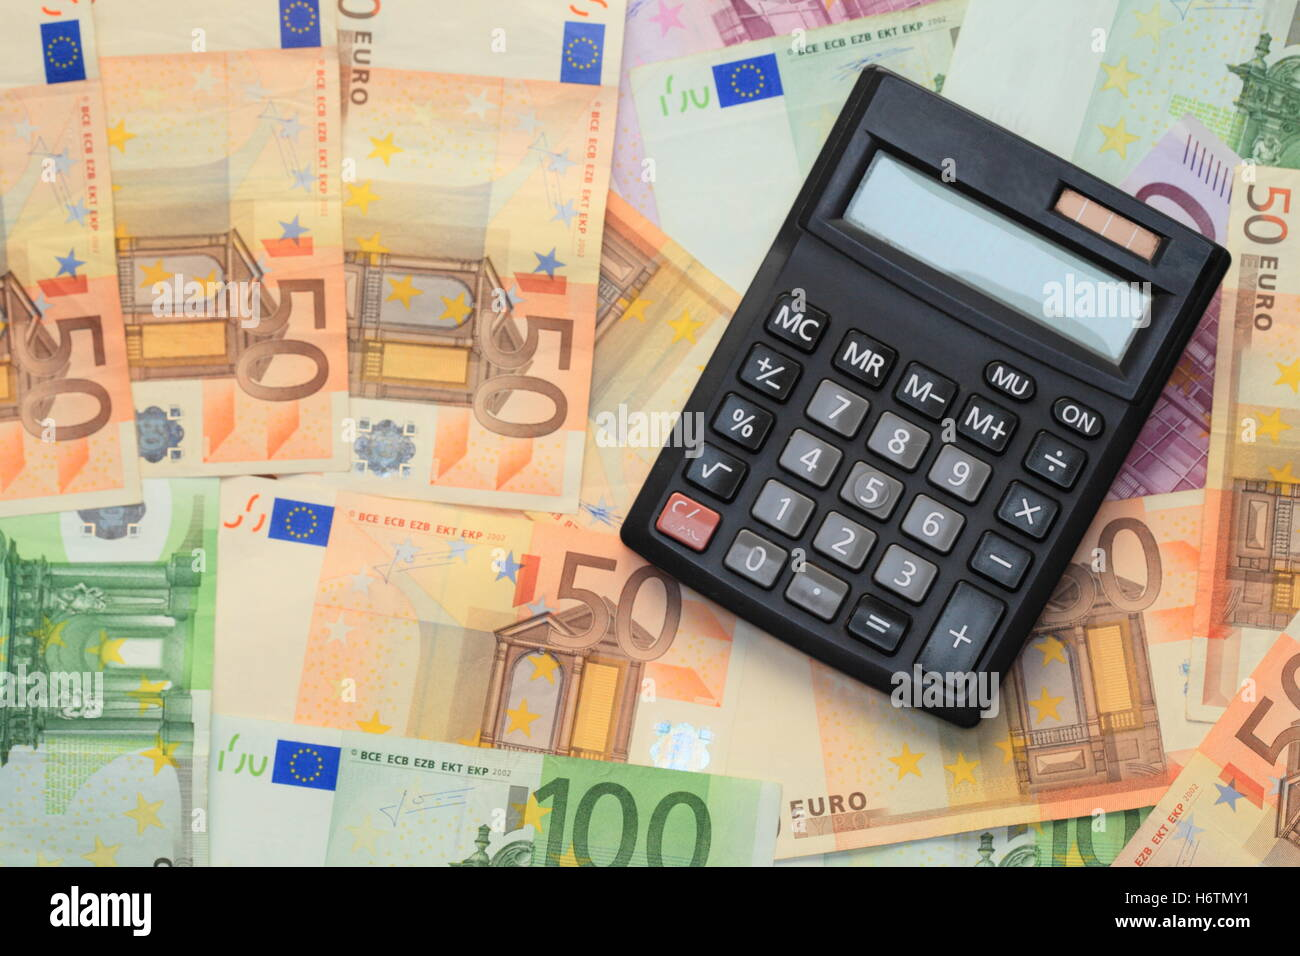 bank lending institution check calculation pay calculator euro stock